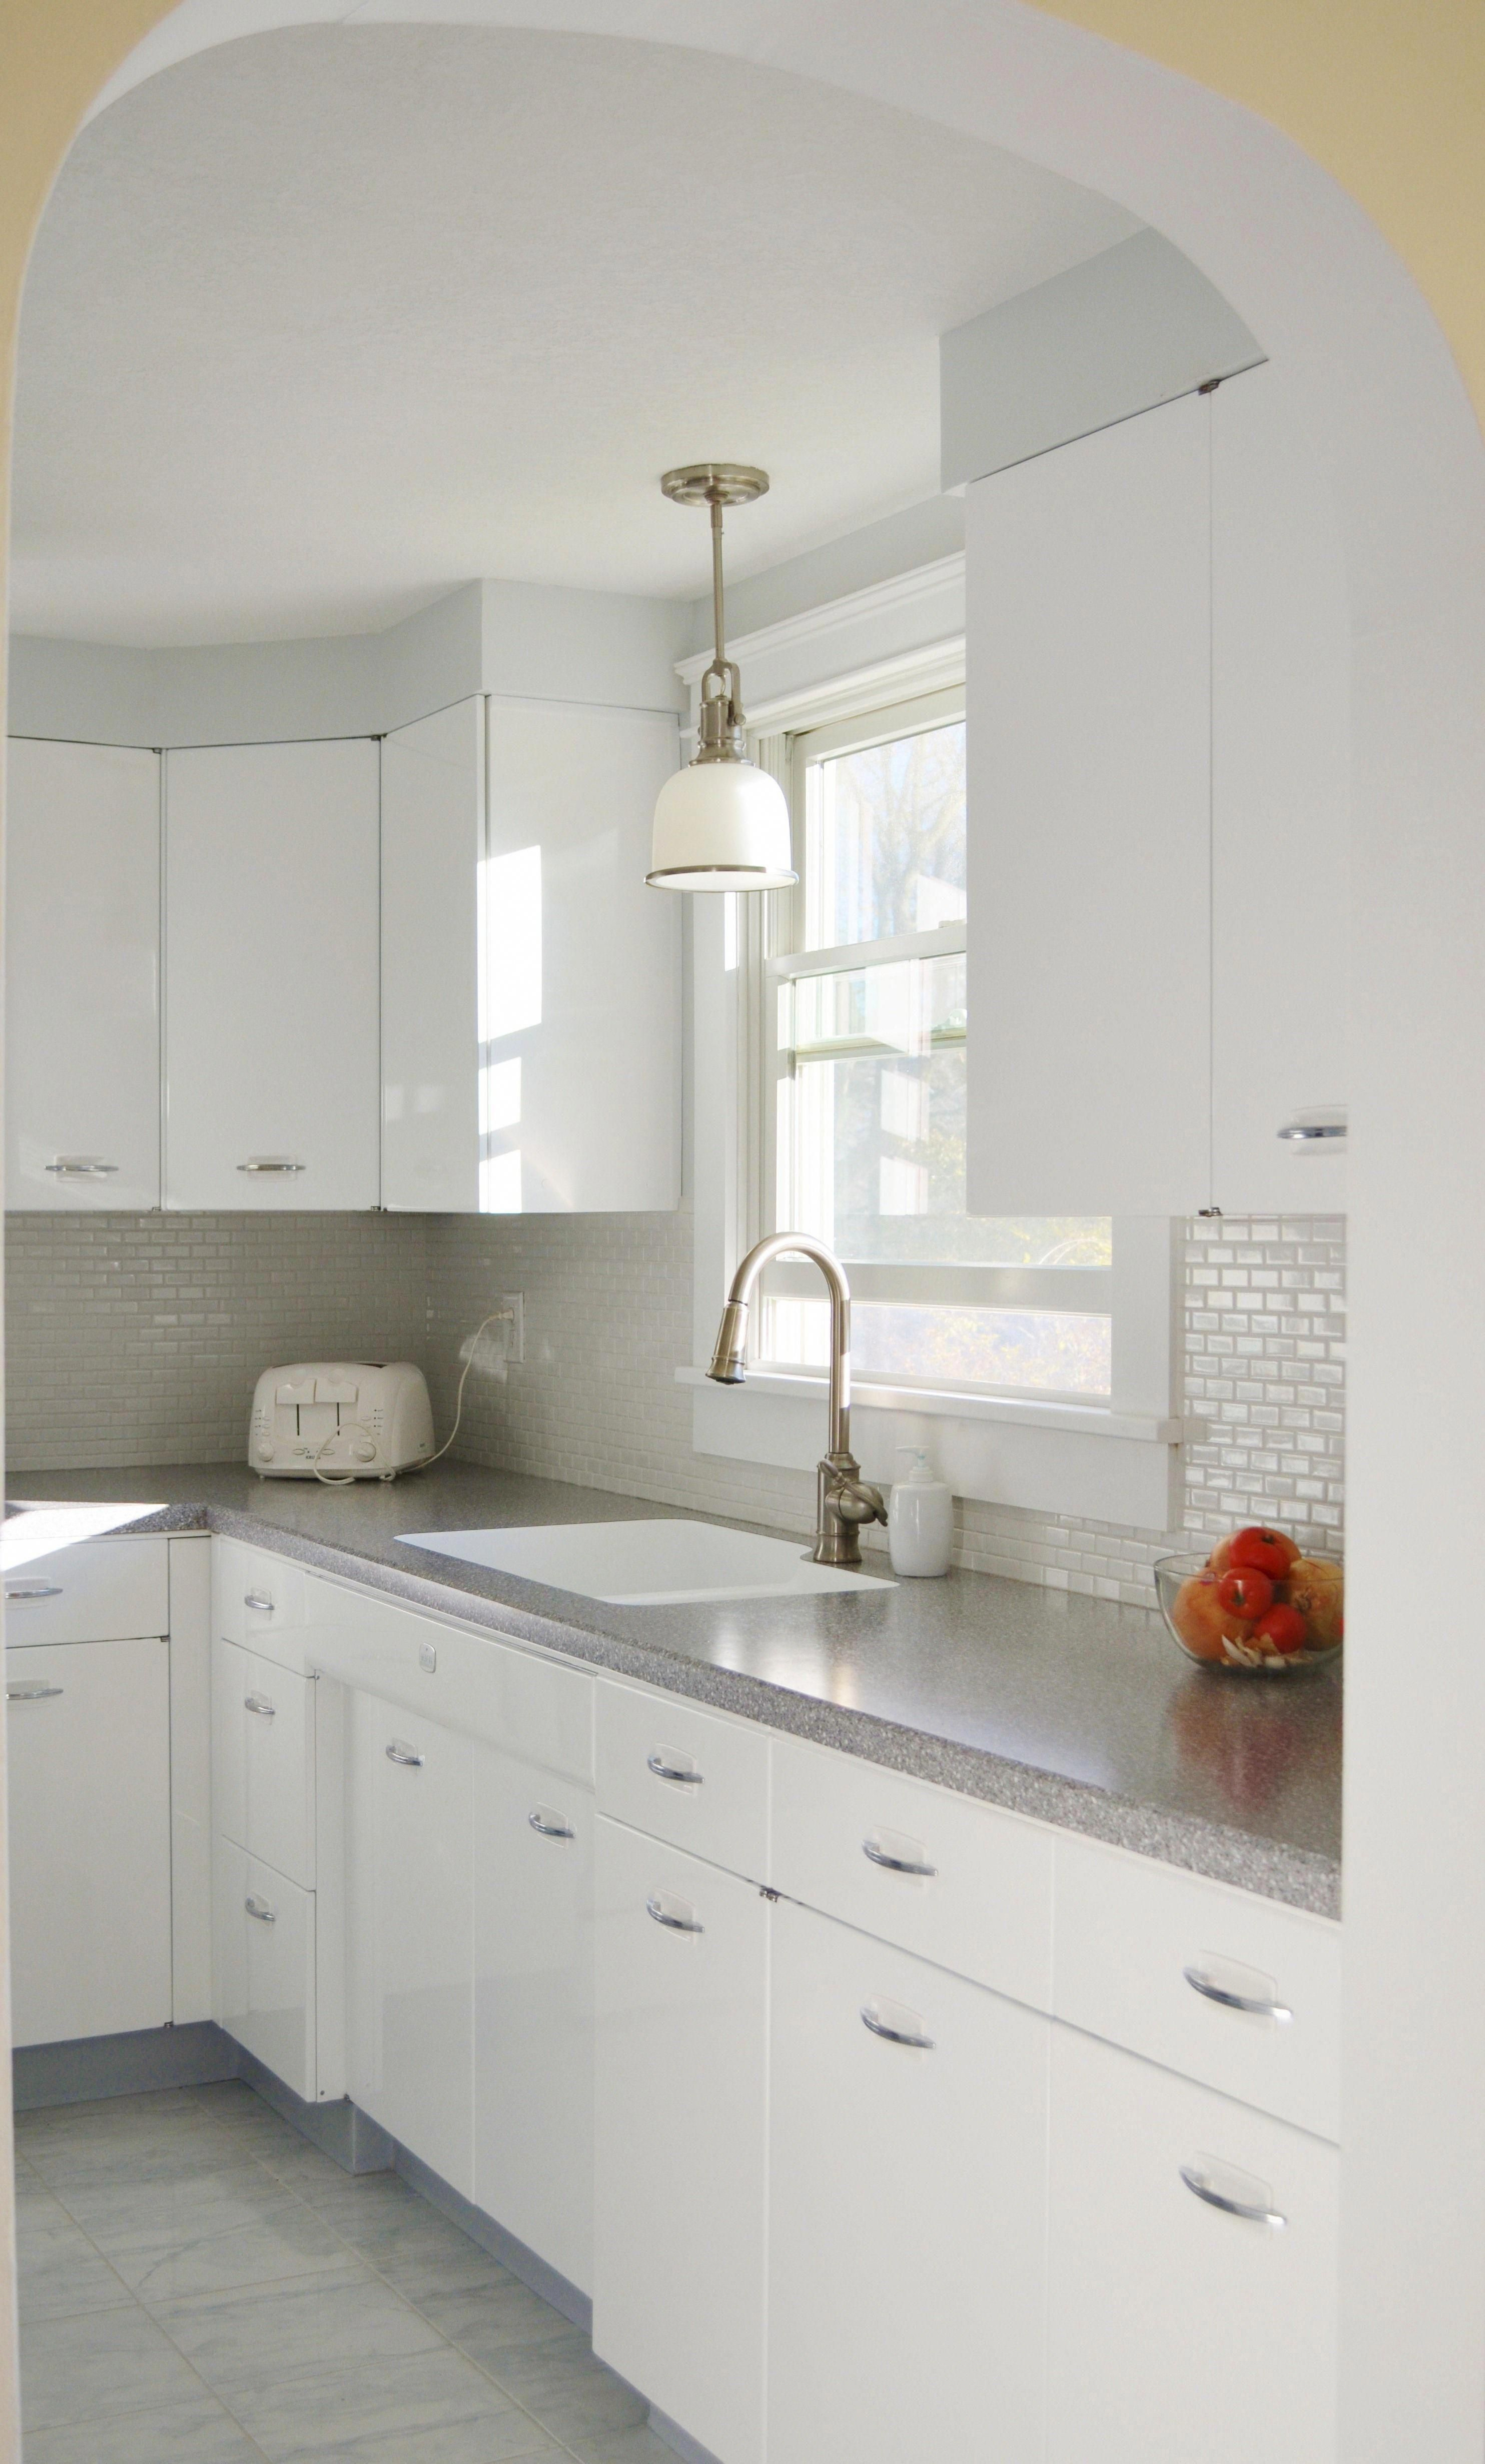 Wonderful Article To Review Based Upon Kitchen Cabinetry Update In